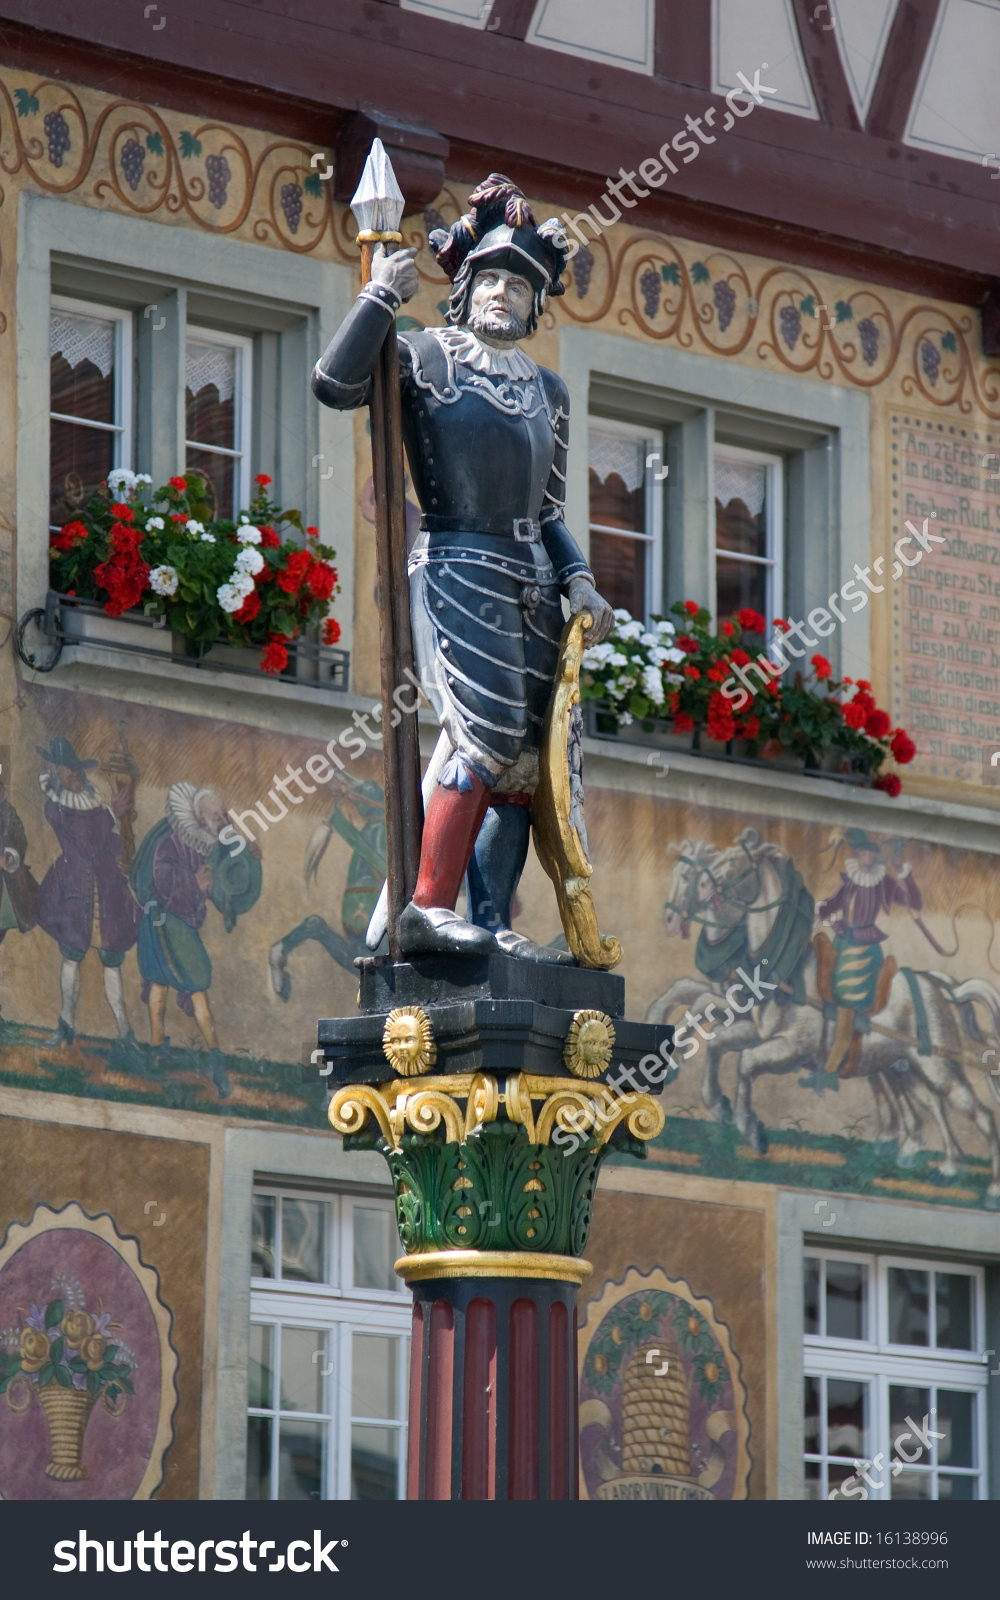 Knight Fountain Statue In Stein.